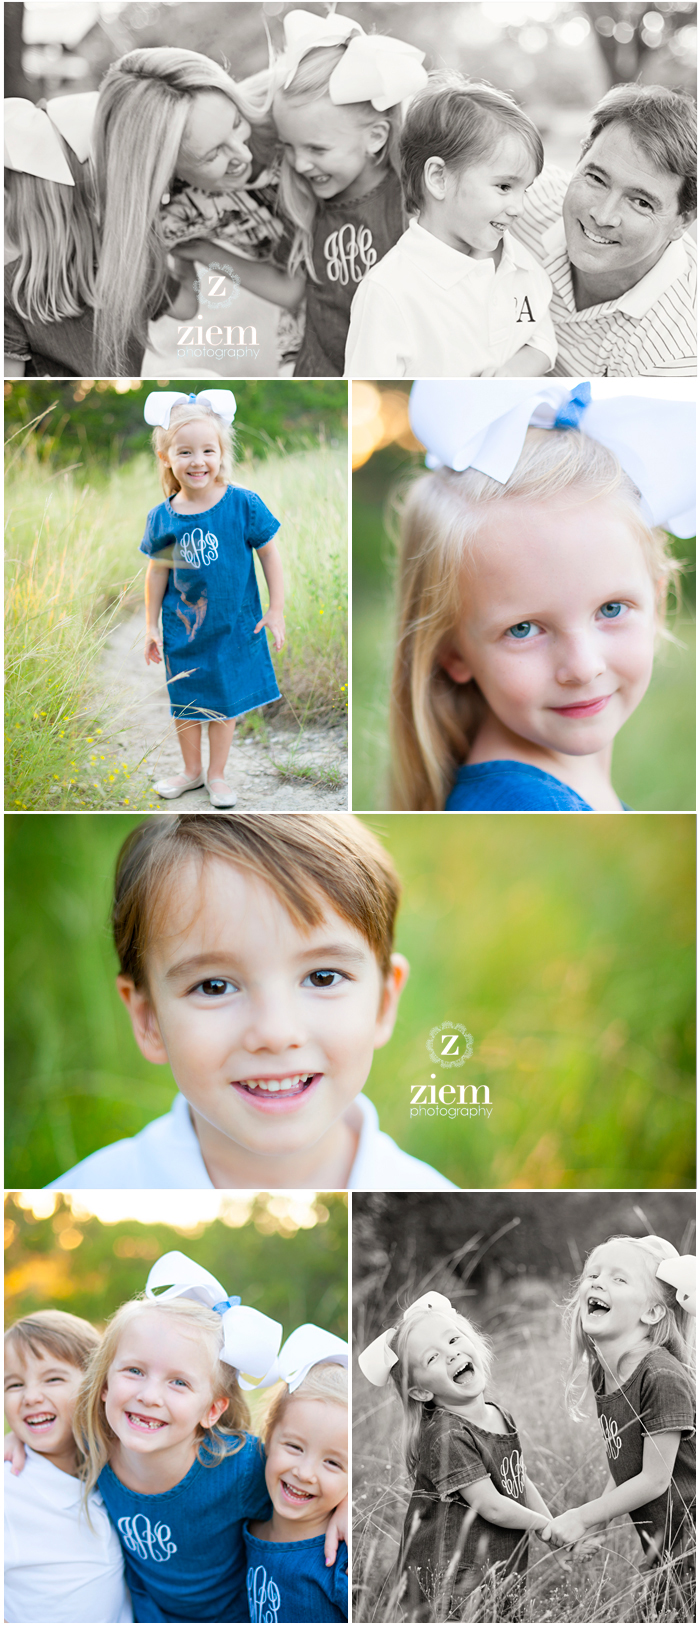 Austin Family Photographers Austin Photography Mini Session ziem photography Austin Photography Mini Session aghamalian dell trust